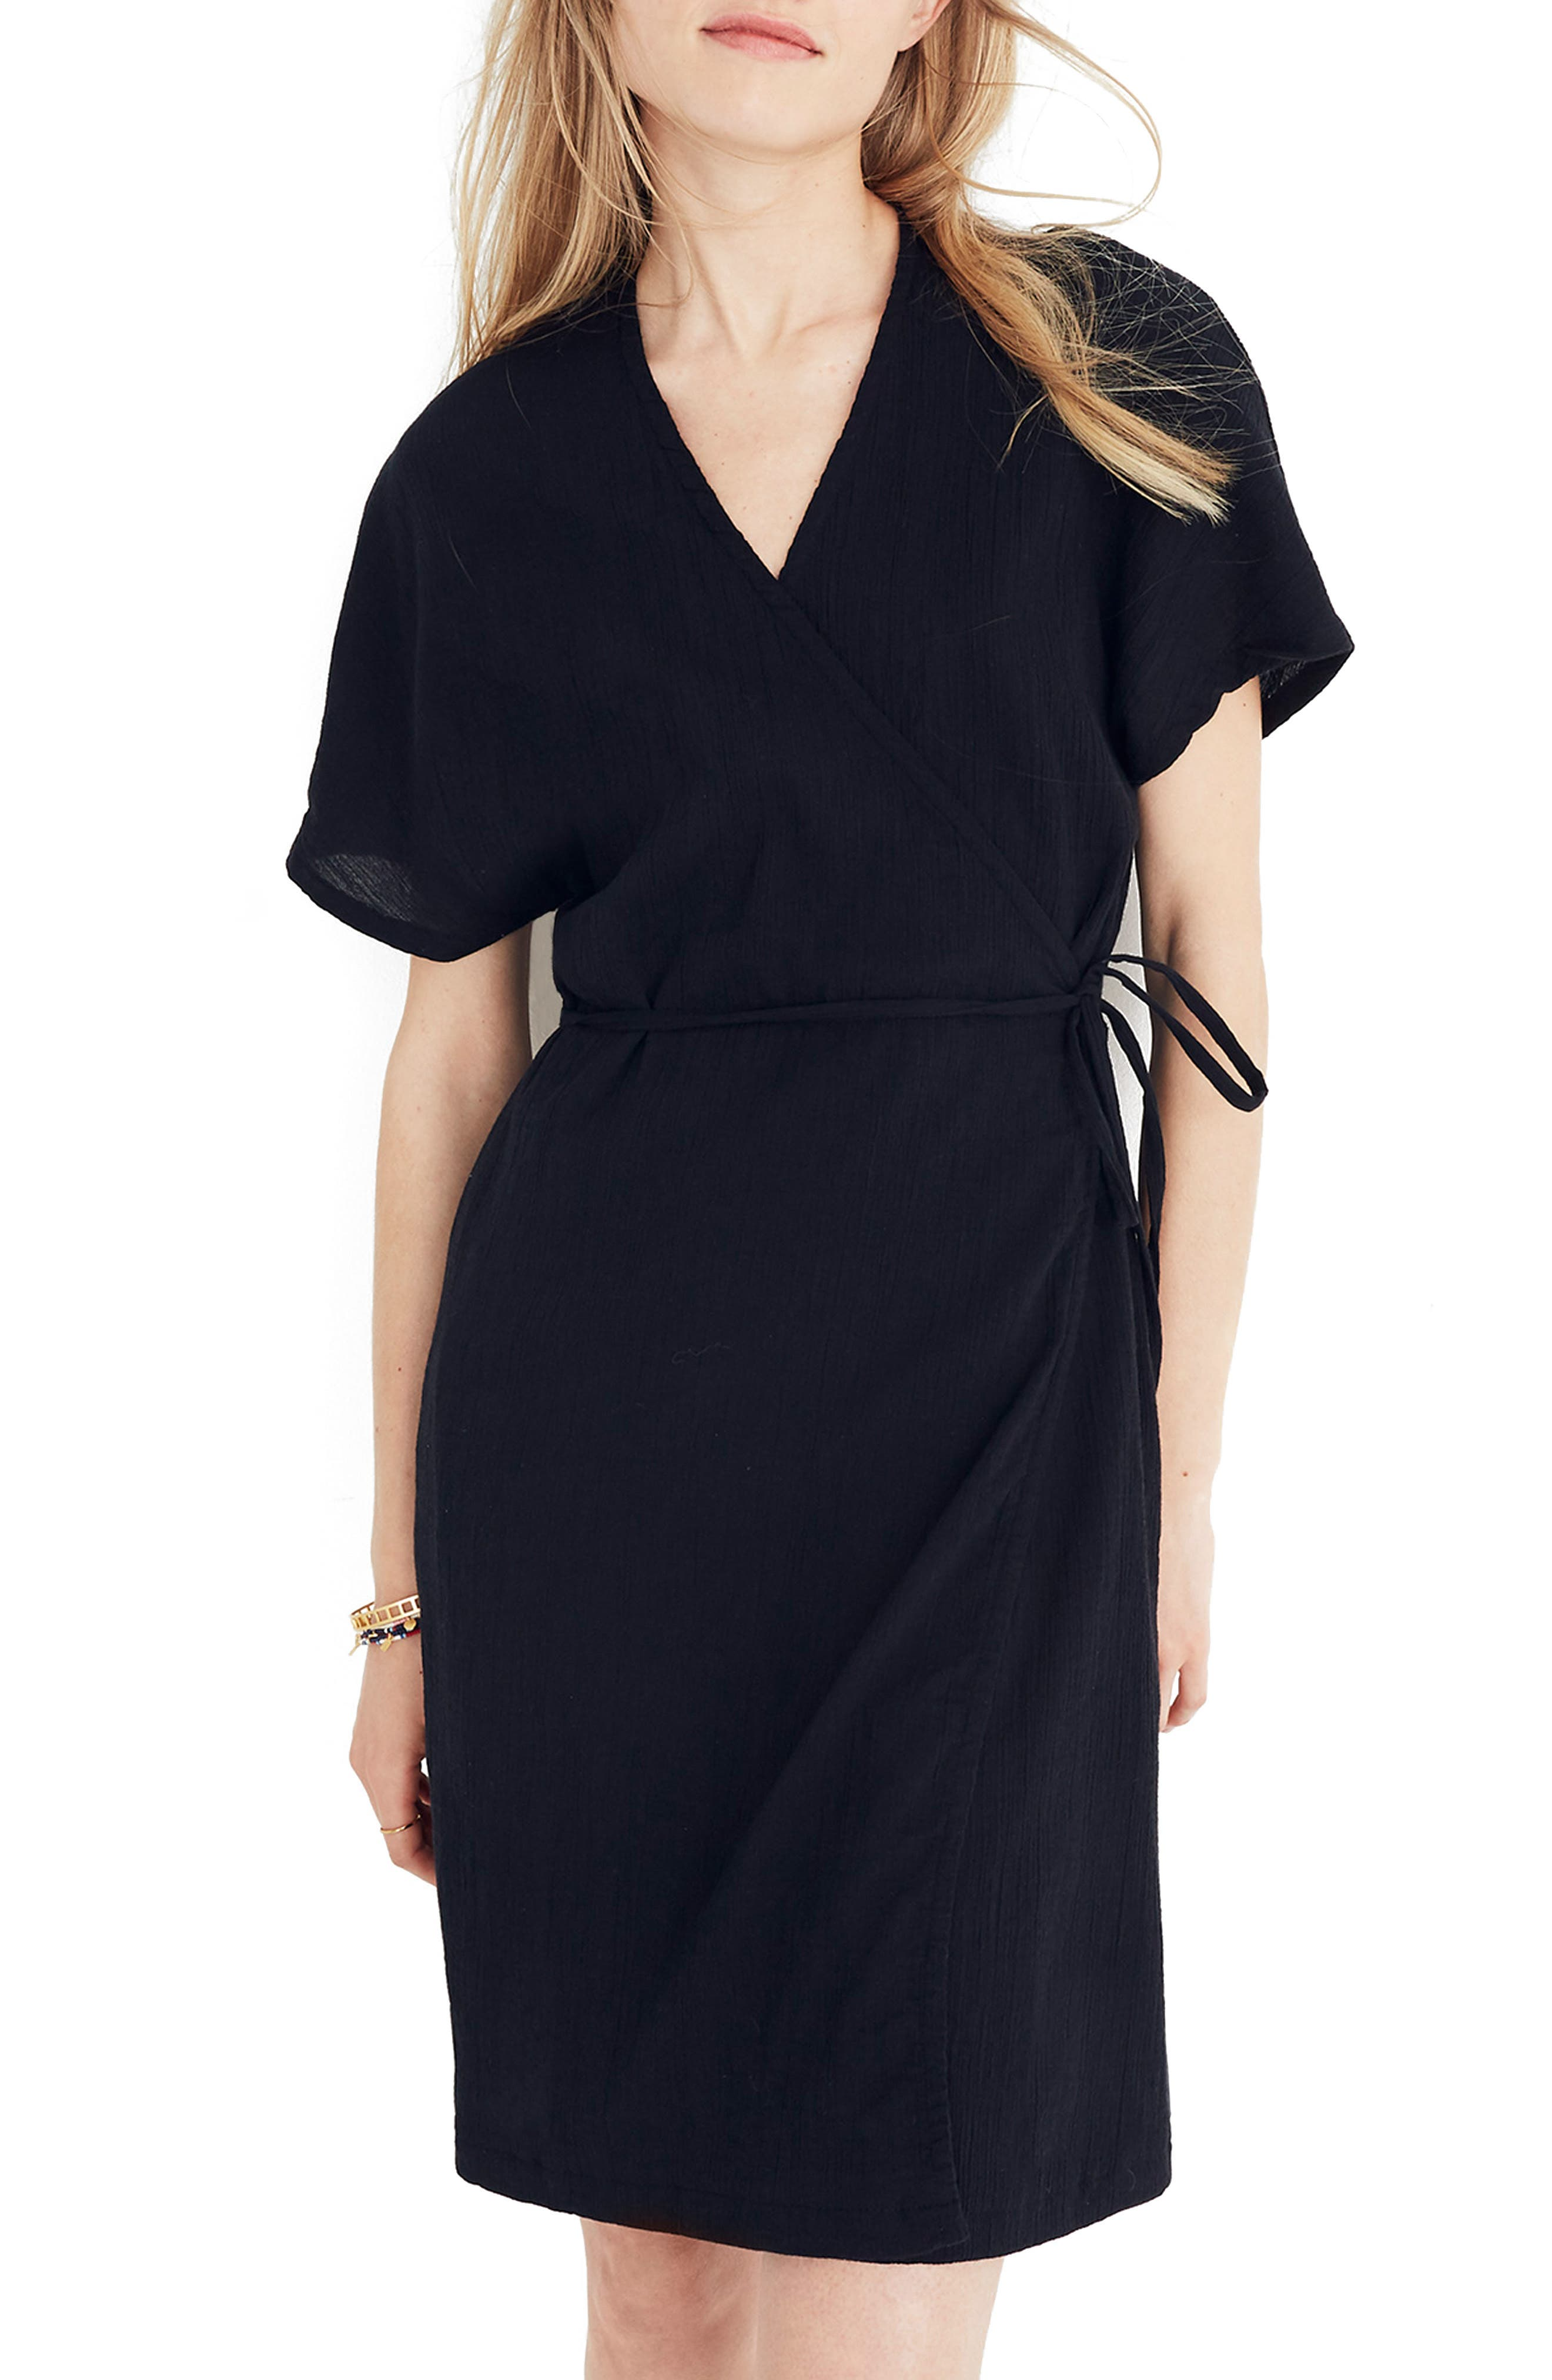 MADEWELL,                             Gauze Wrap Dress,                             Main thumbnail 1, color,                             001